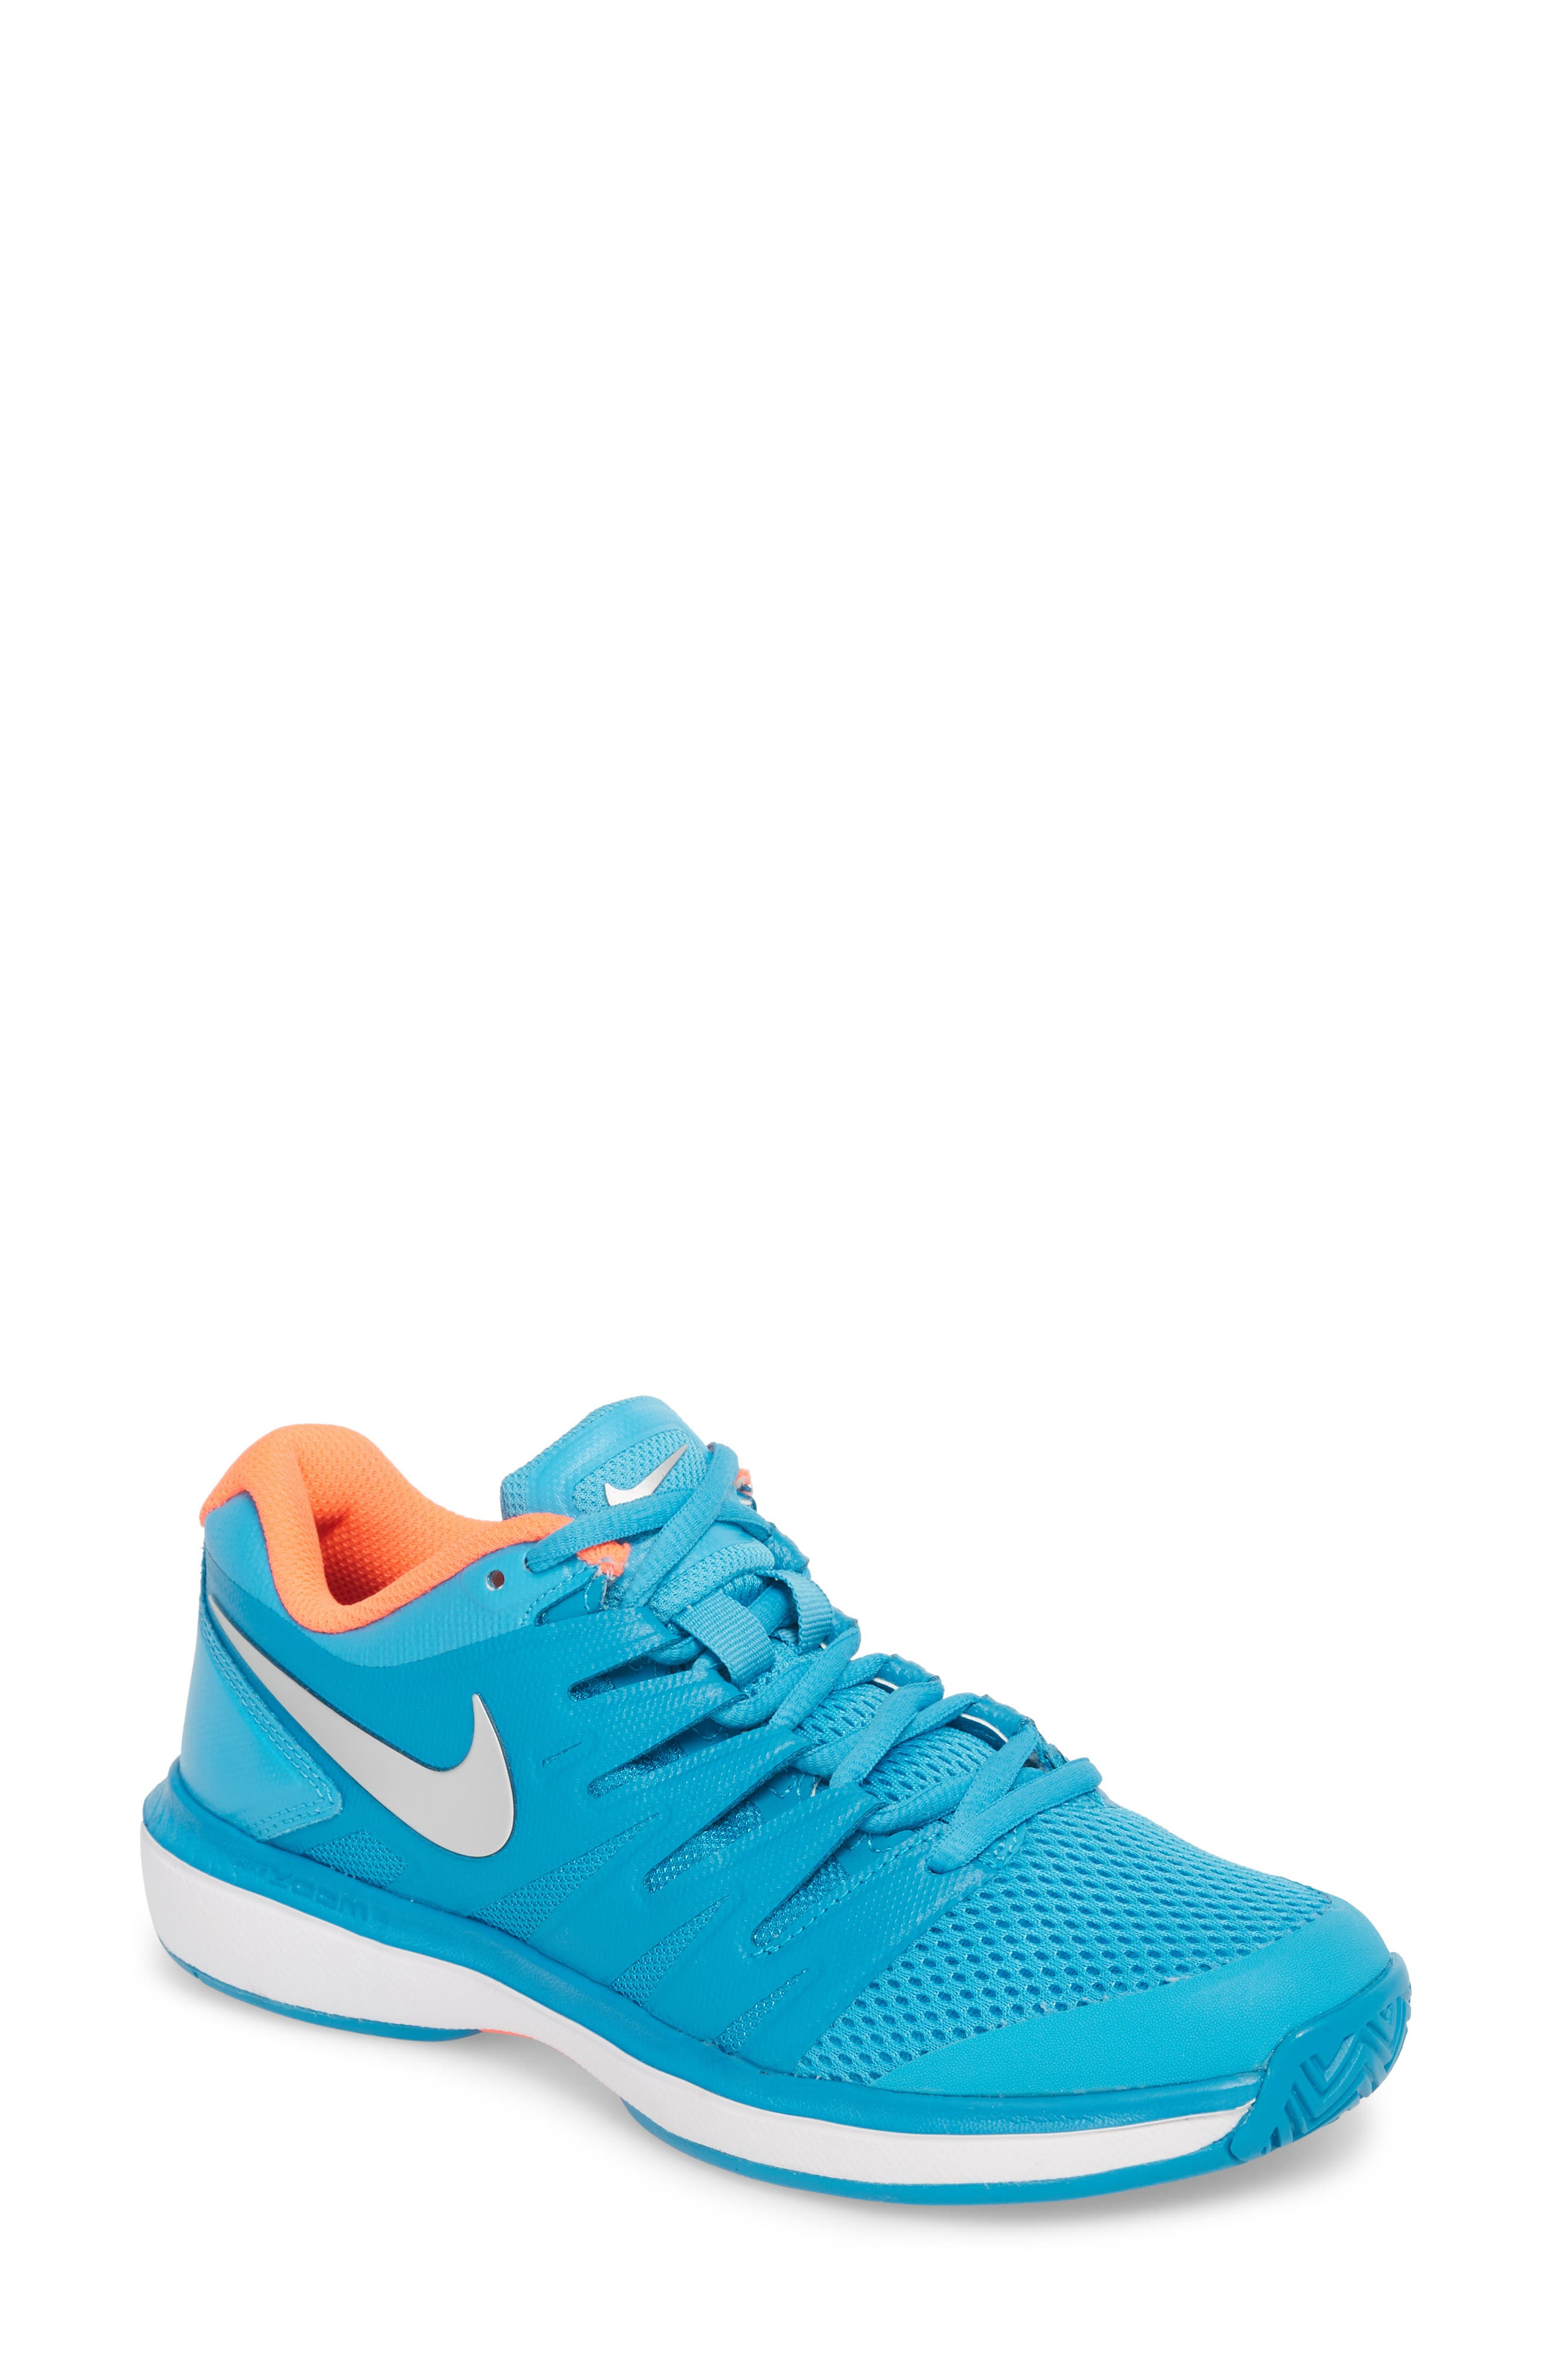 Nike Air Zoom Prestige Tennis Shoe (Women)